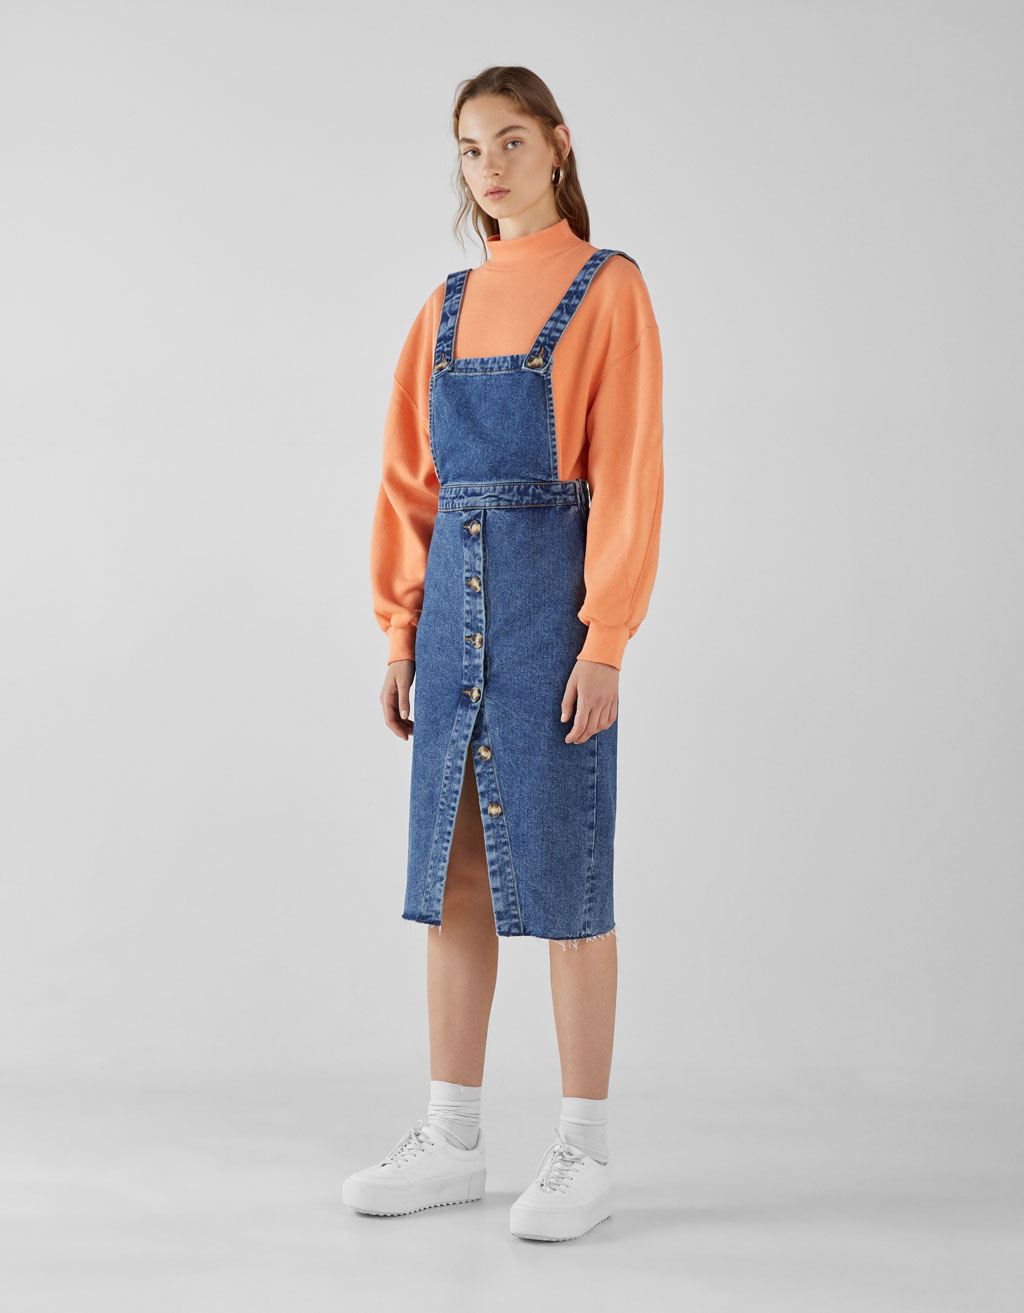 Denim skirt overalls with buttons